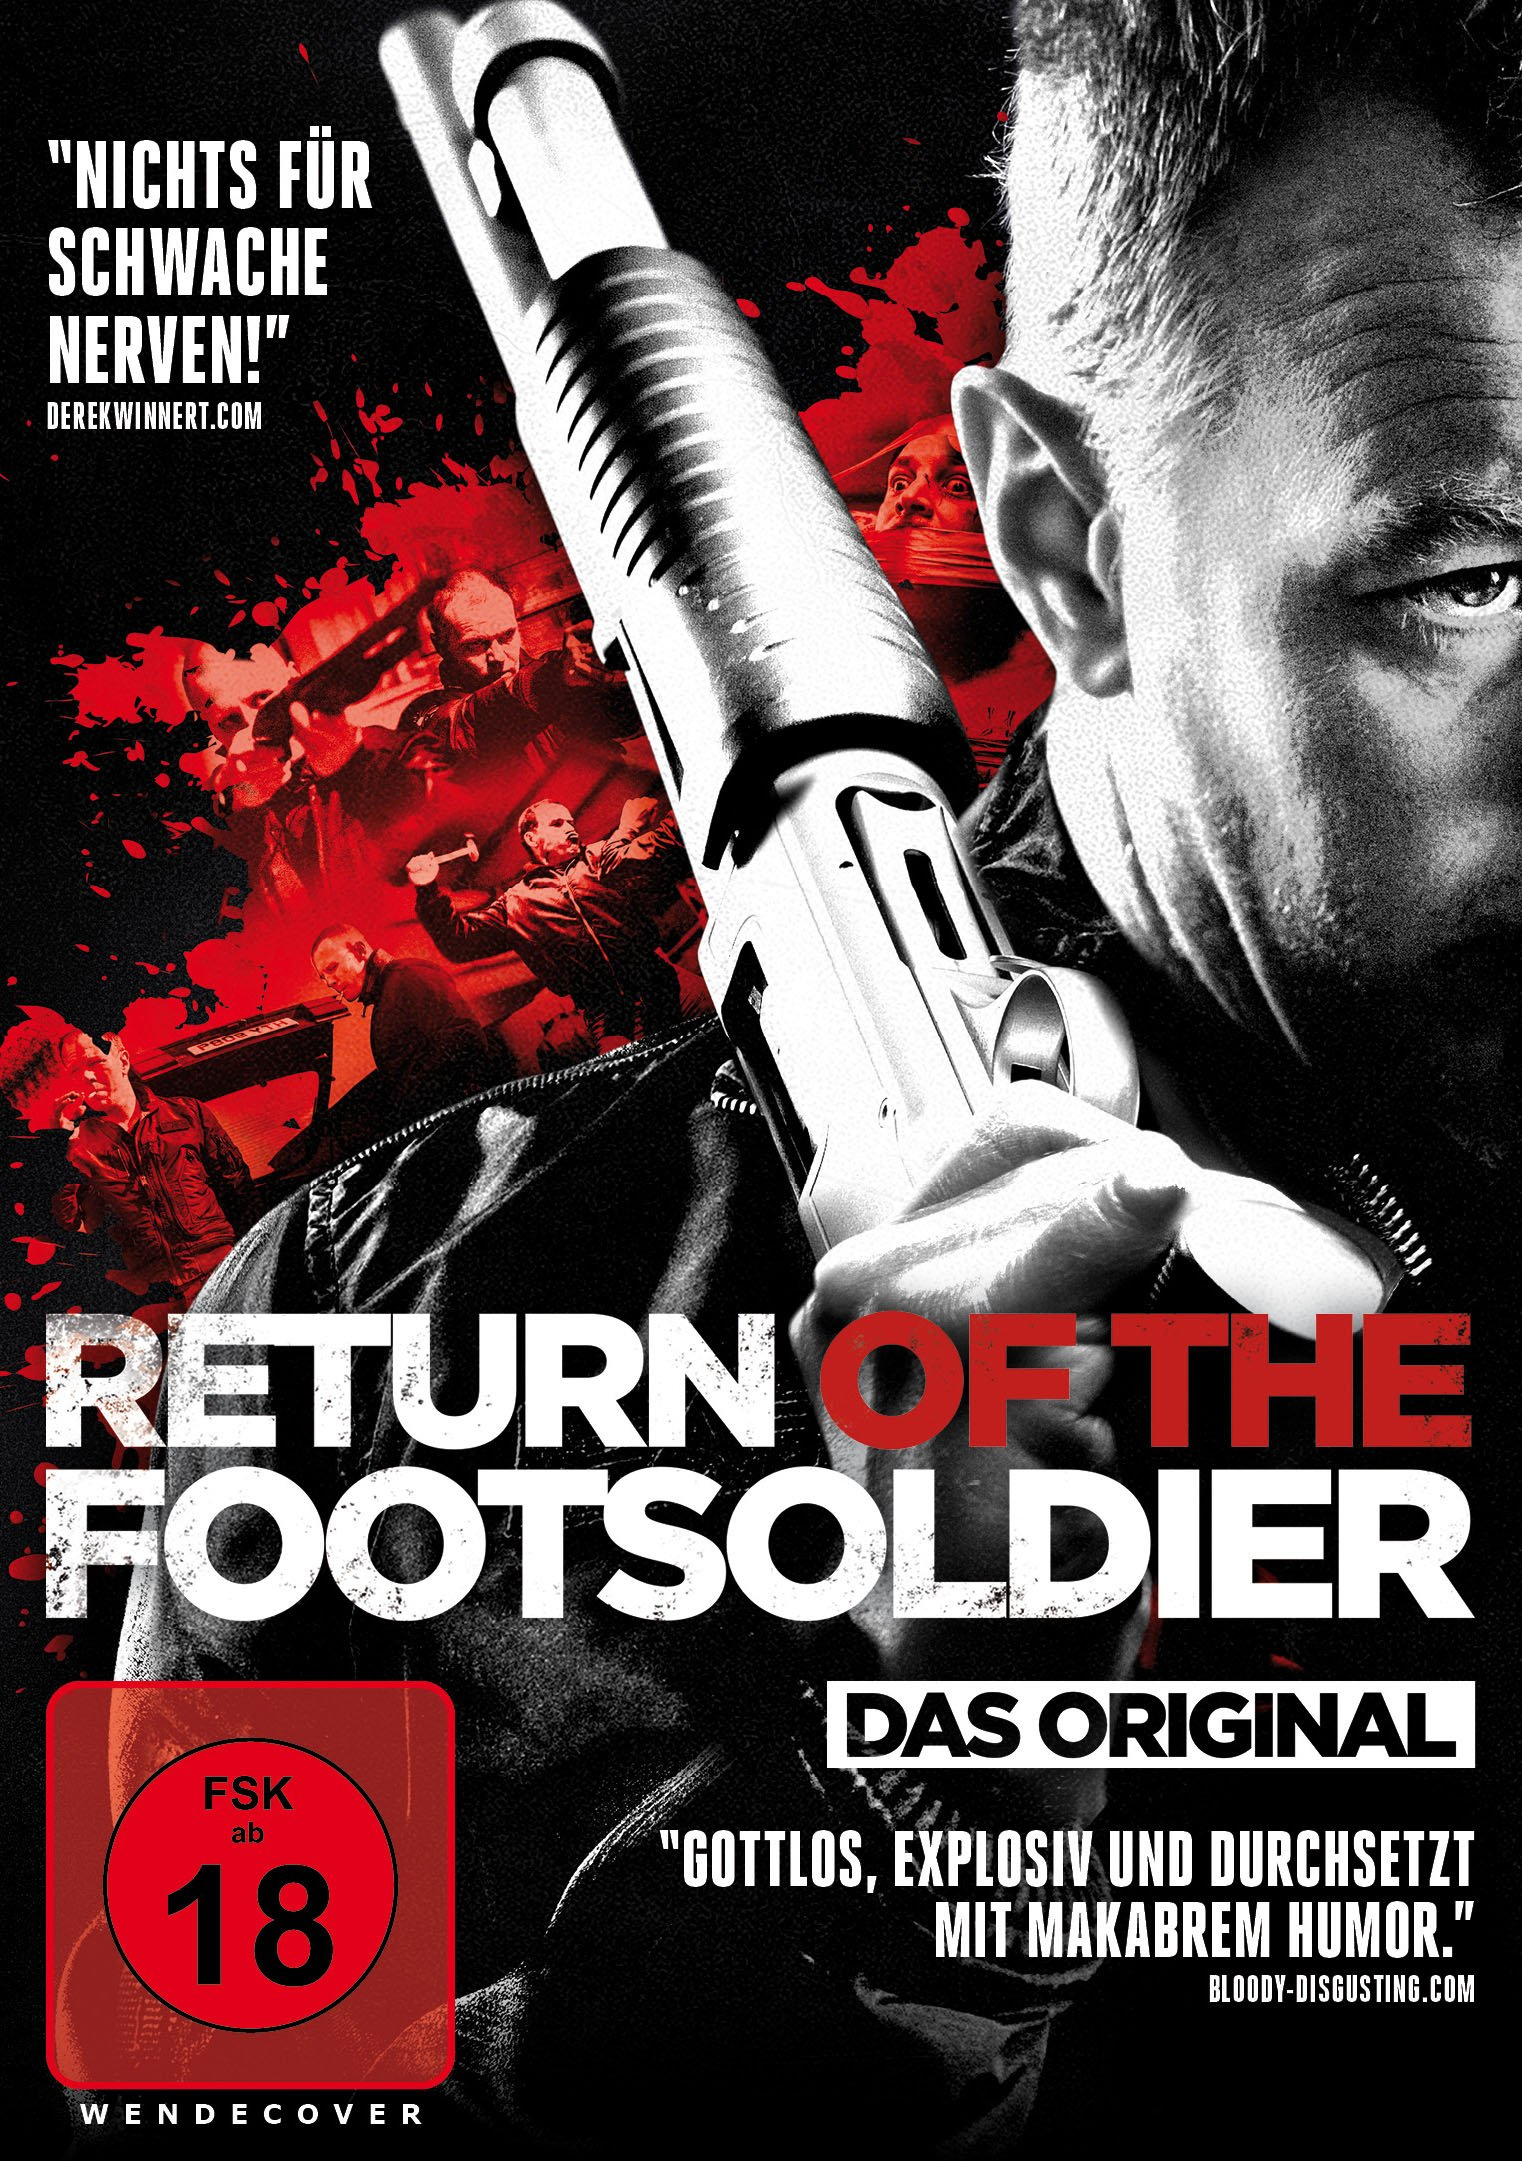 : Return of the Footsoldier German 2015 Ac3 BdriP x264-Xf